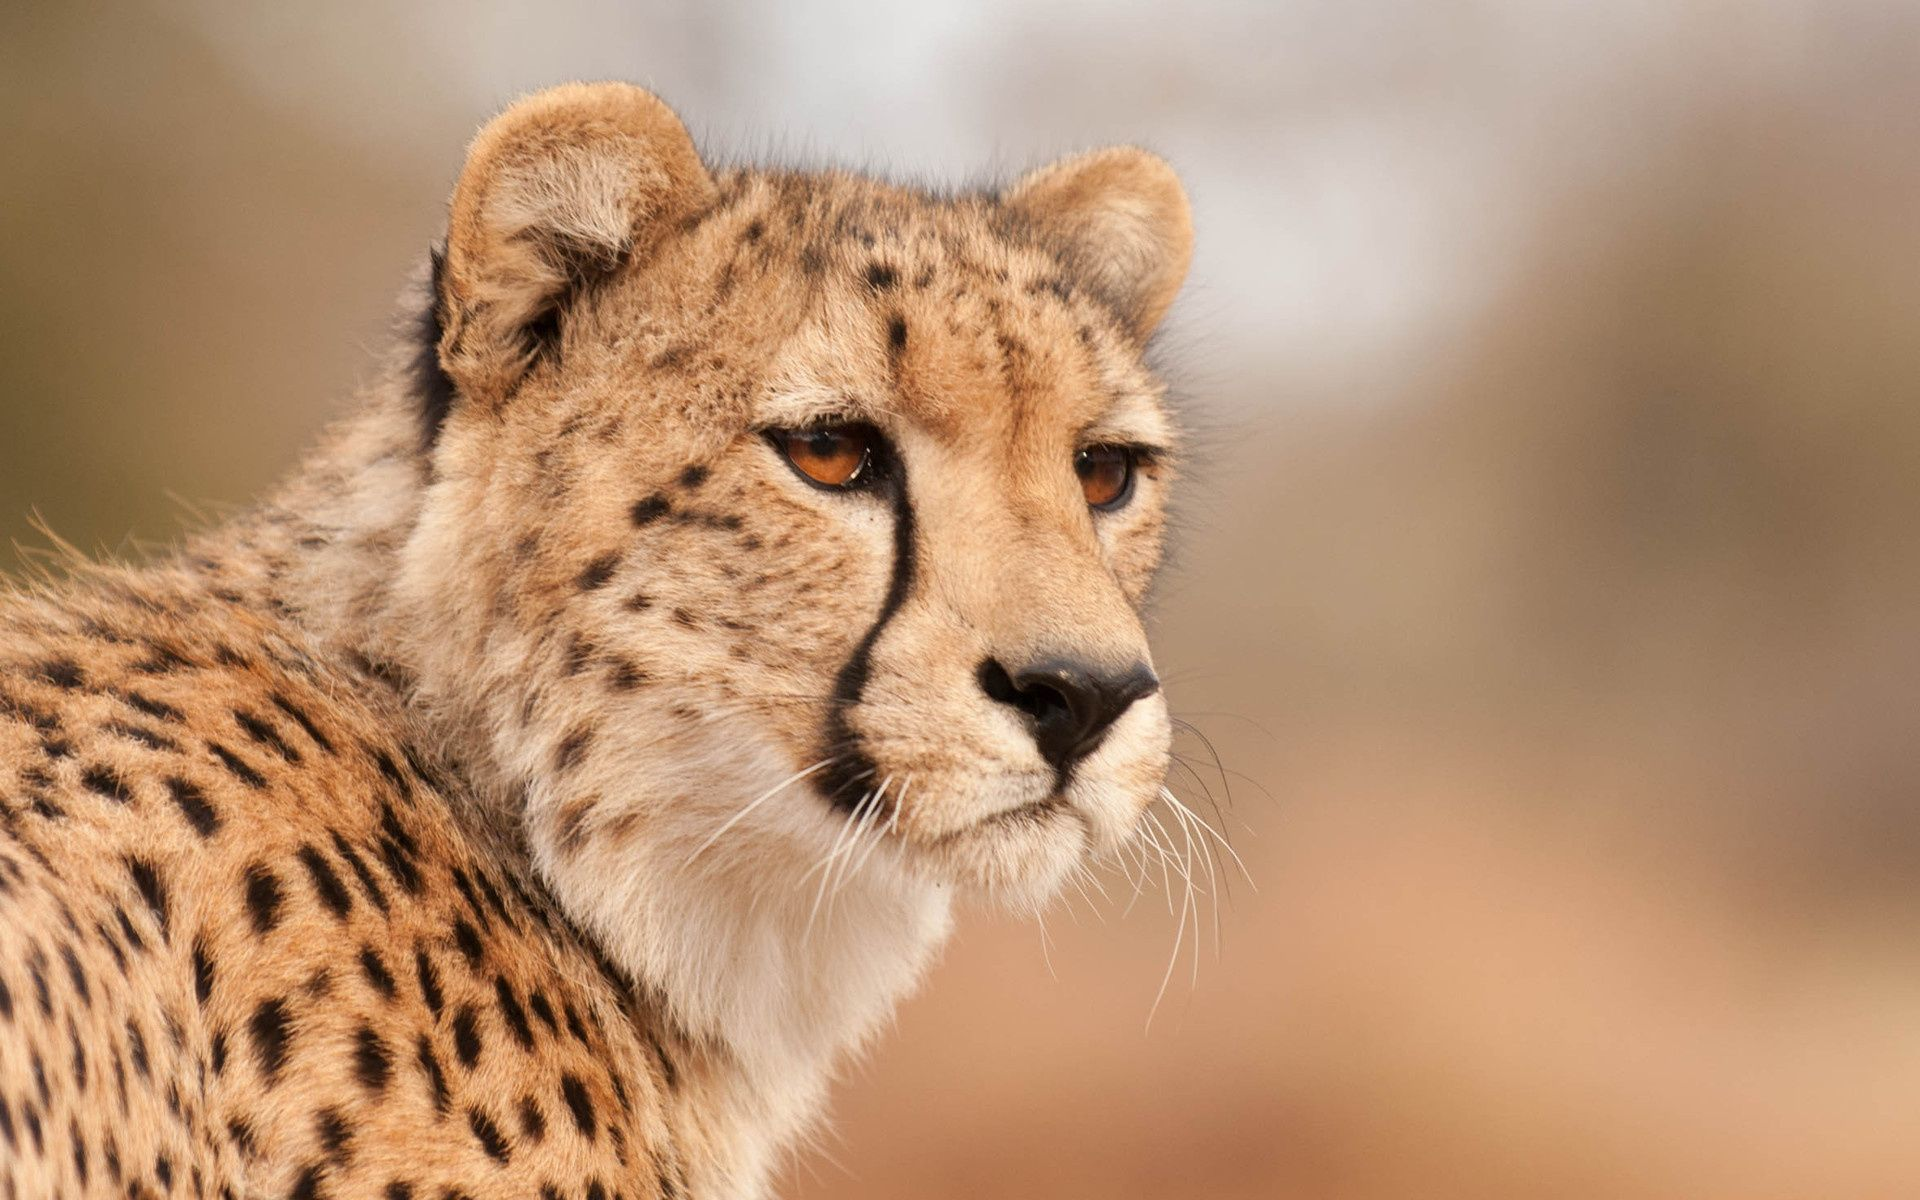 cheetah, looks, snout, wallpapers , Pc backgrounds, free photos - HD wallpaper desktop backgrounds